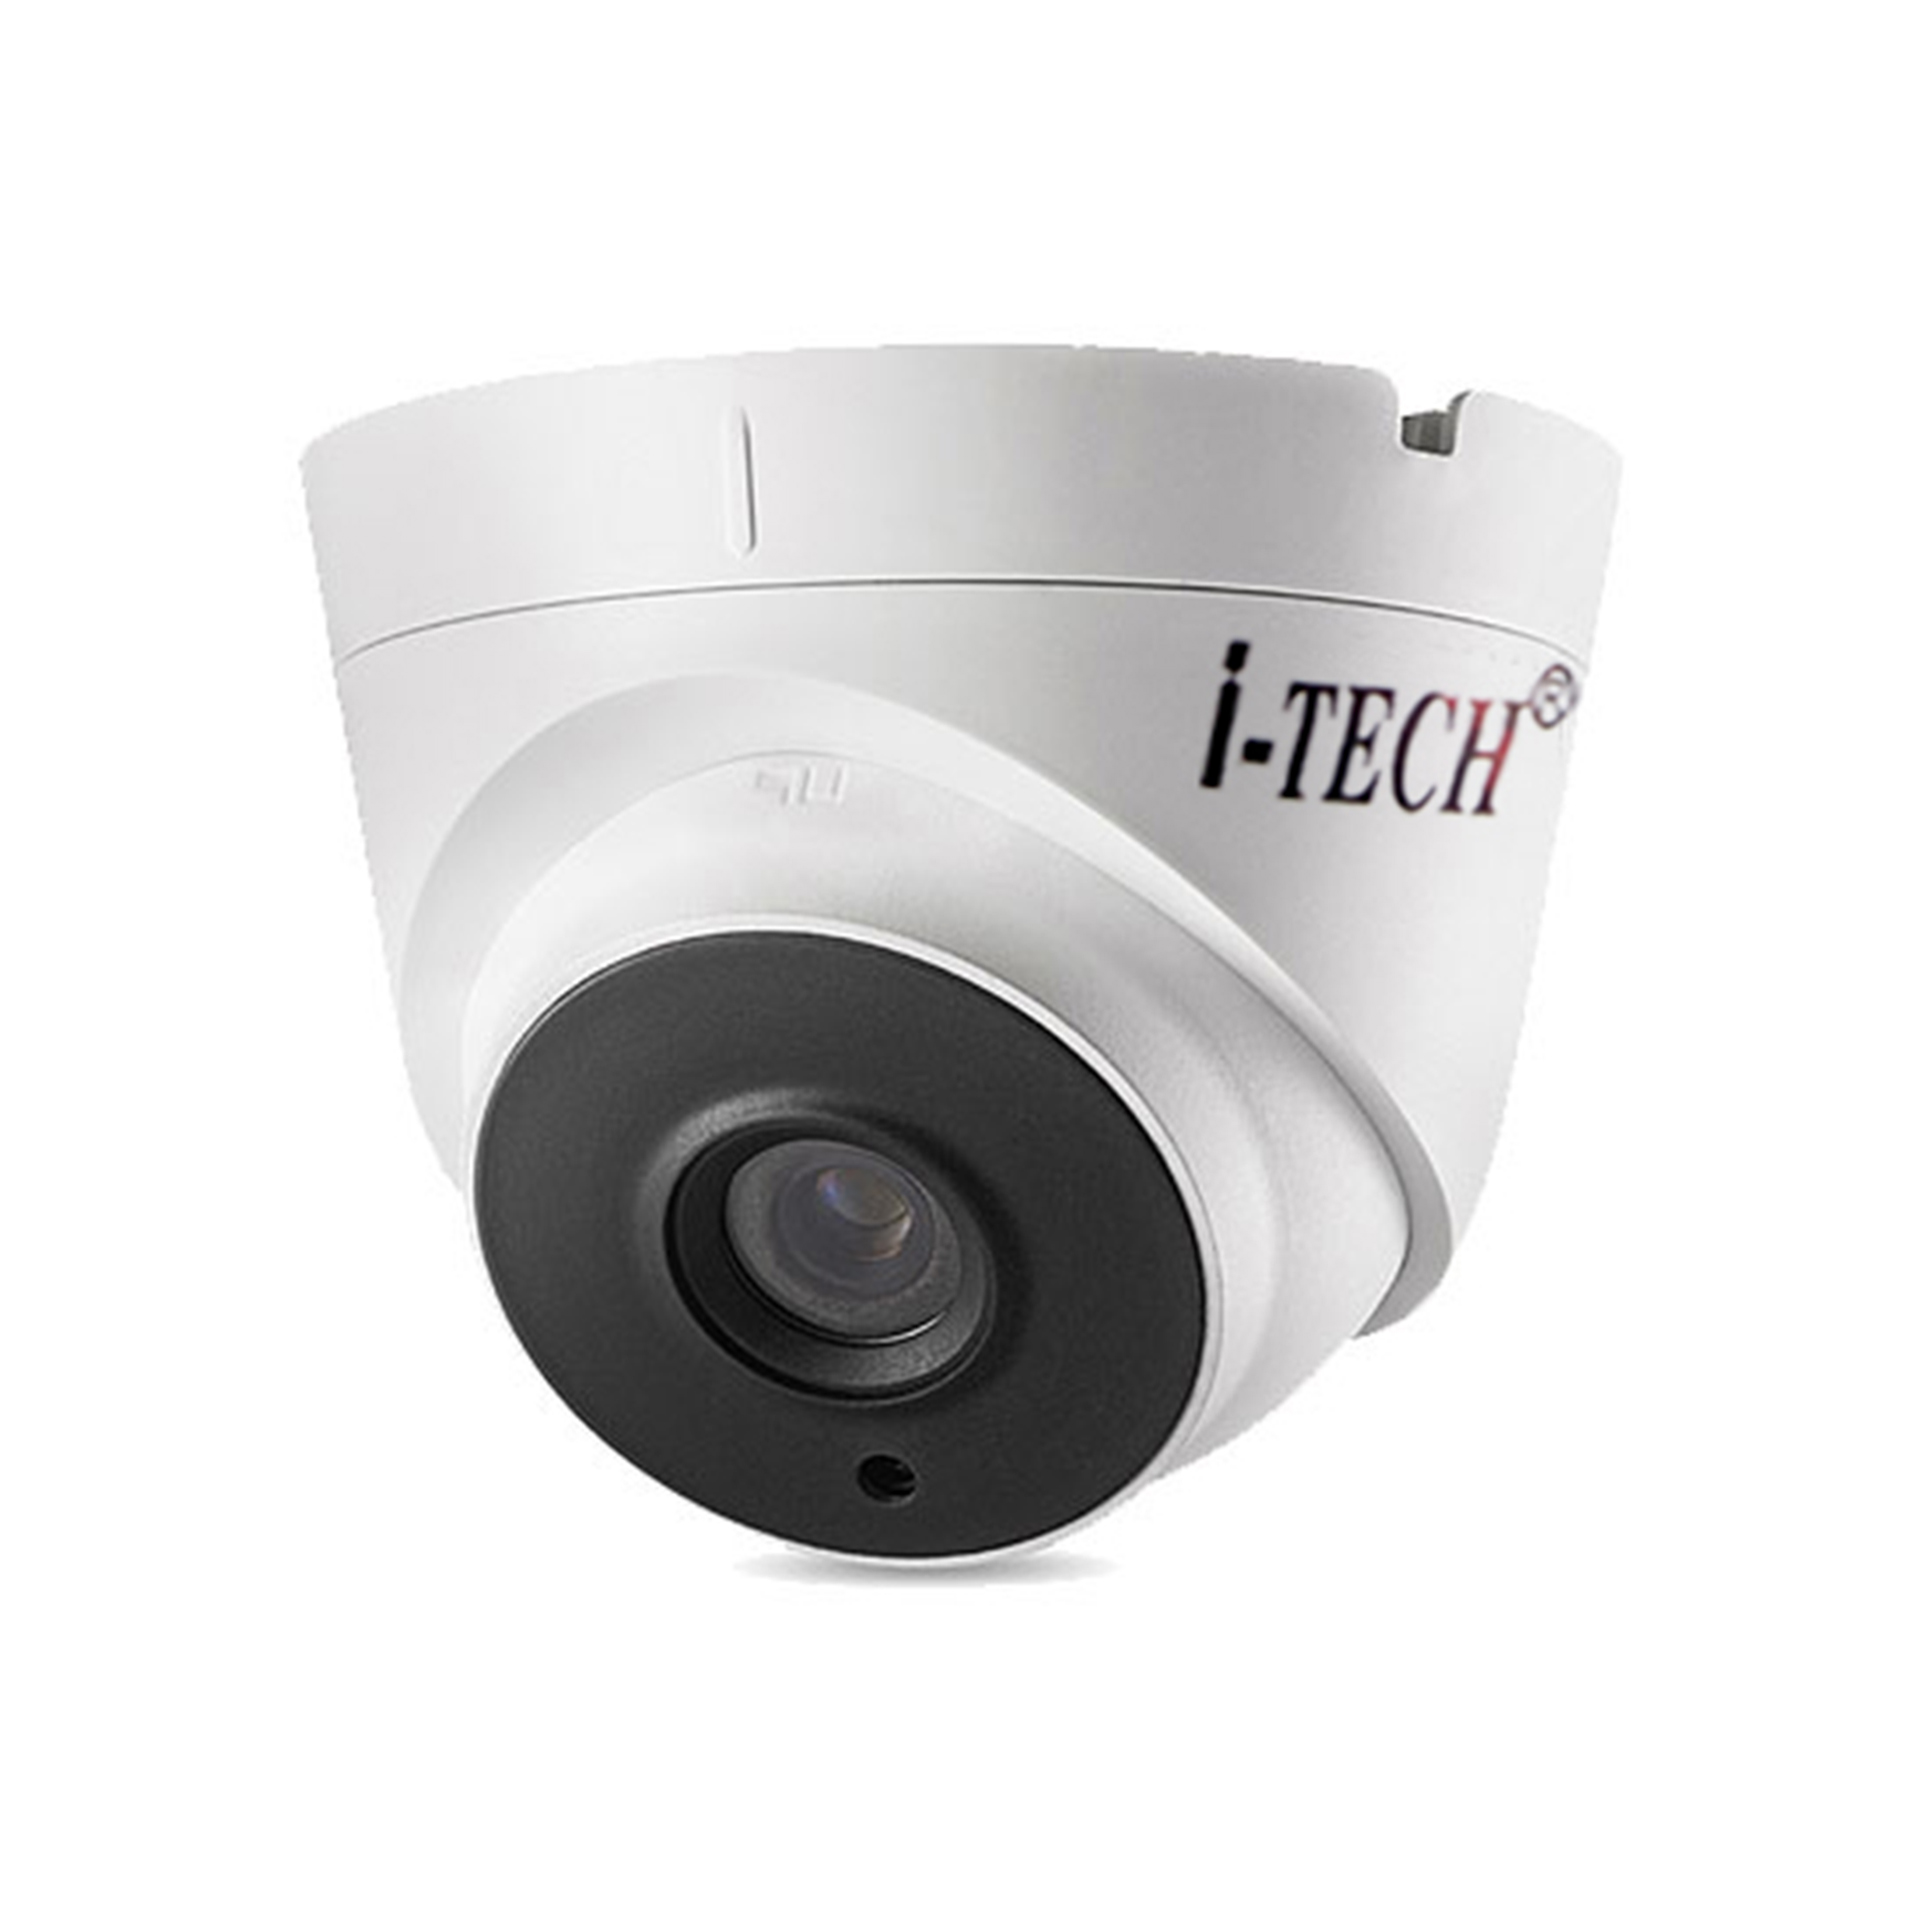 Bộ 4 Camera IP 2.0 Megapixel  iTech-CX20